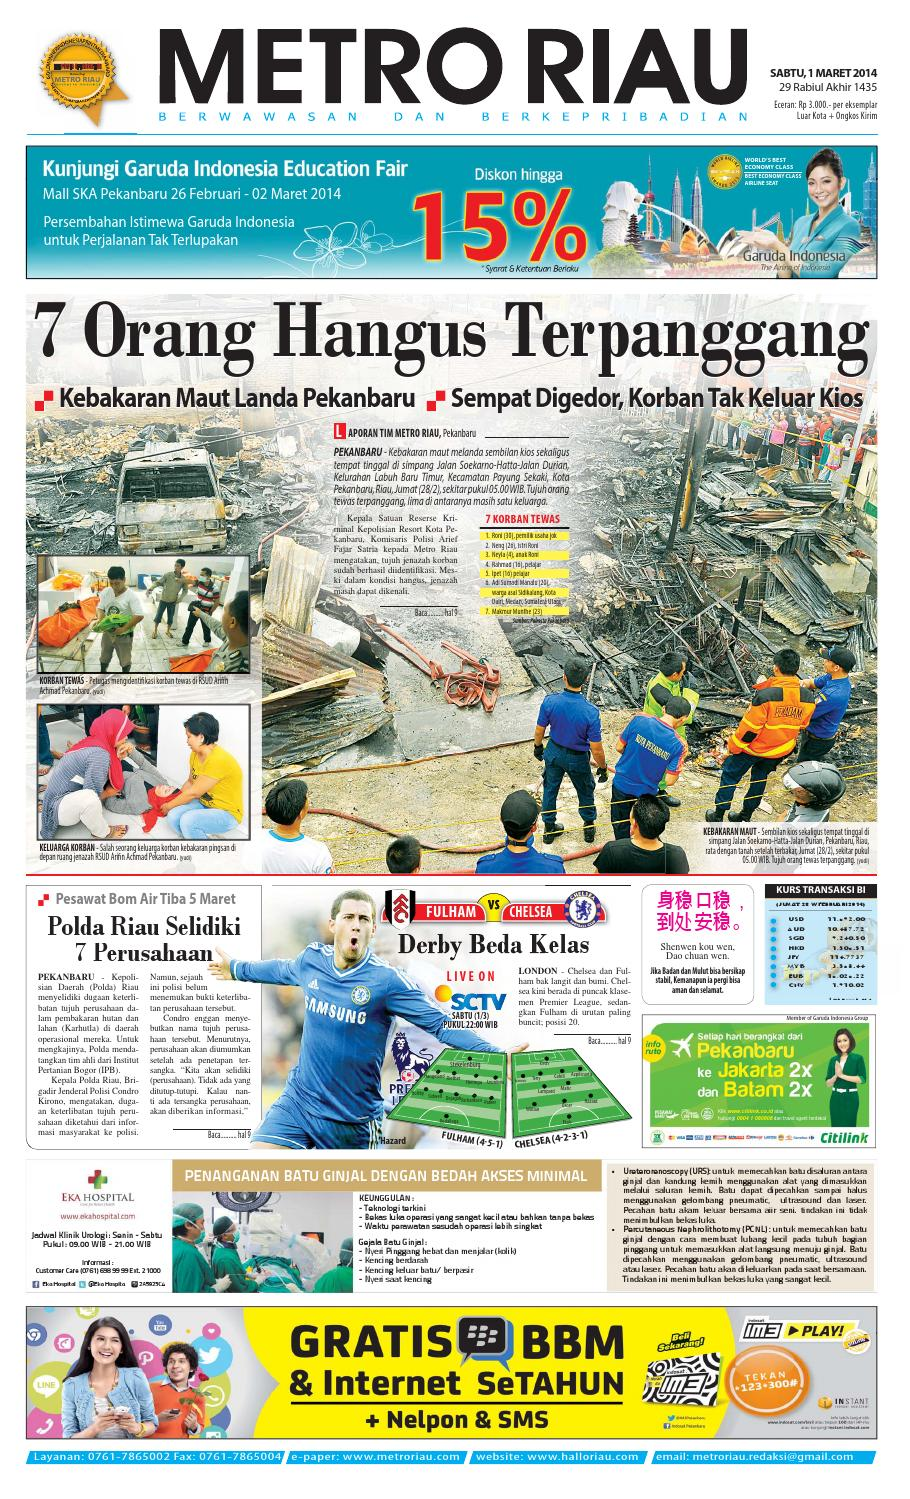 010314 By Harian Pagi Metro Riau Issuu Mercedes Benz E 250 Cabriolet 4 Pintu Karpet Mobil Comfort Deluxe 12mm Car Mat Full Set